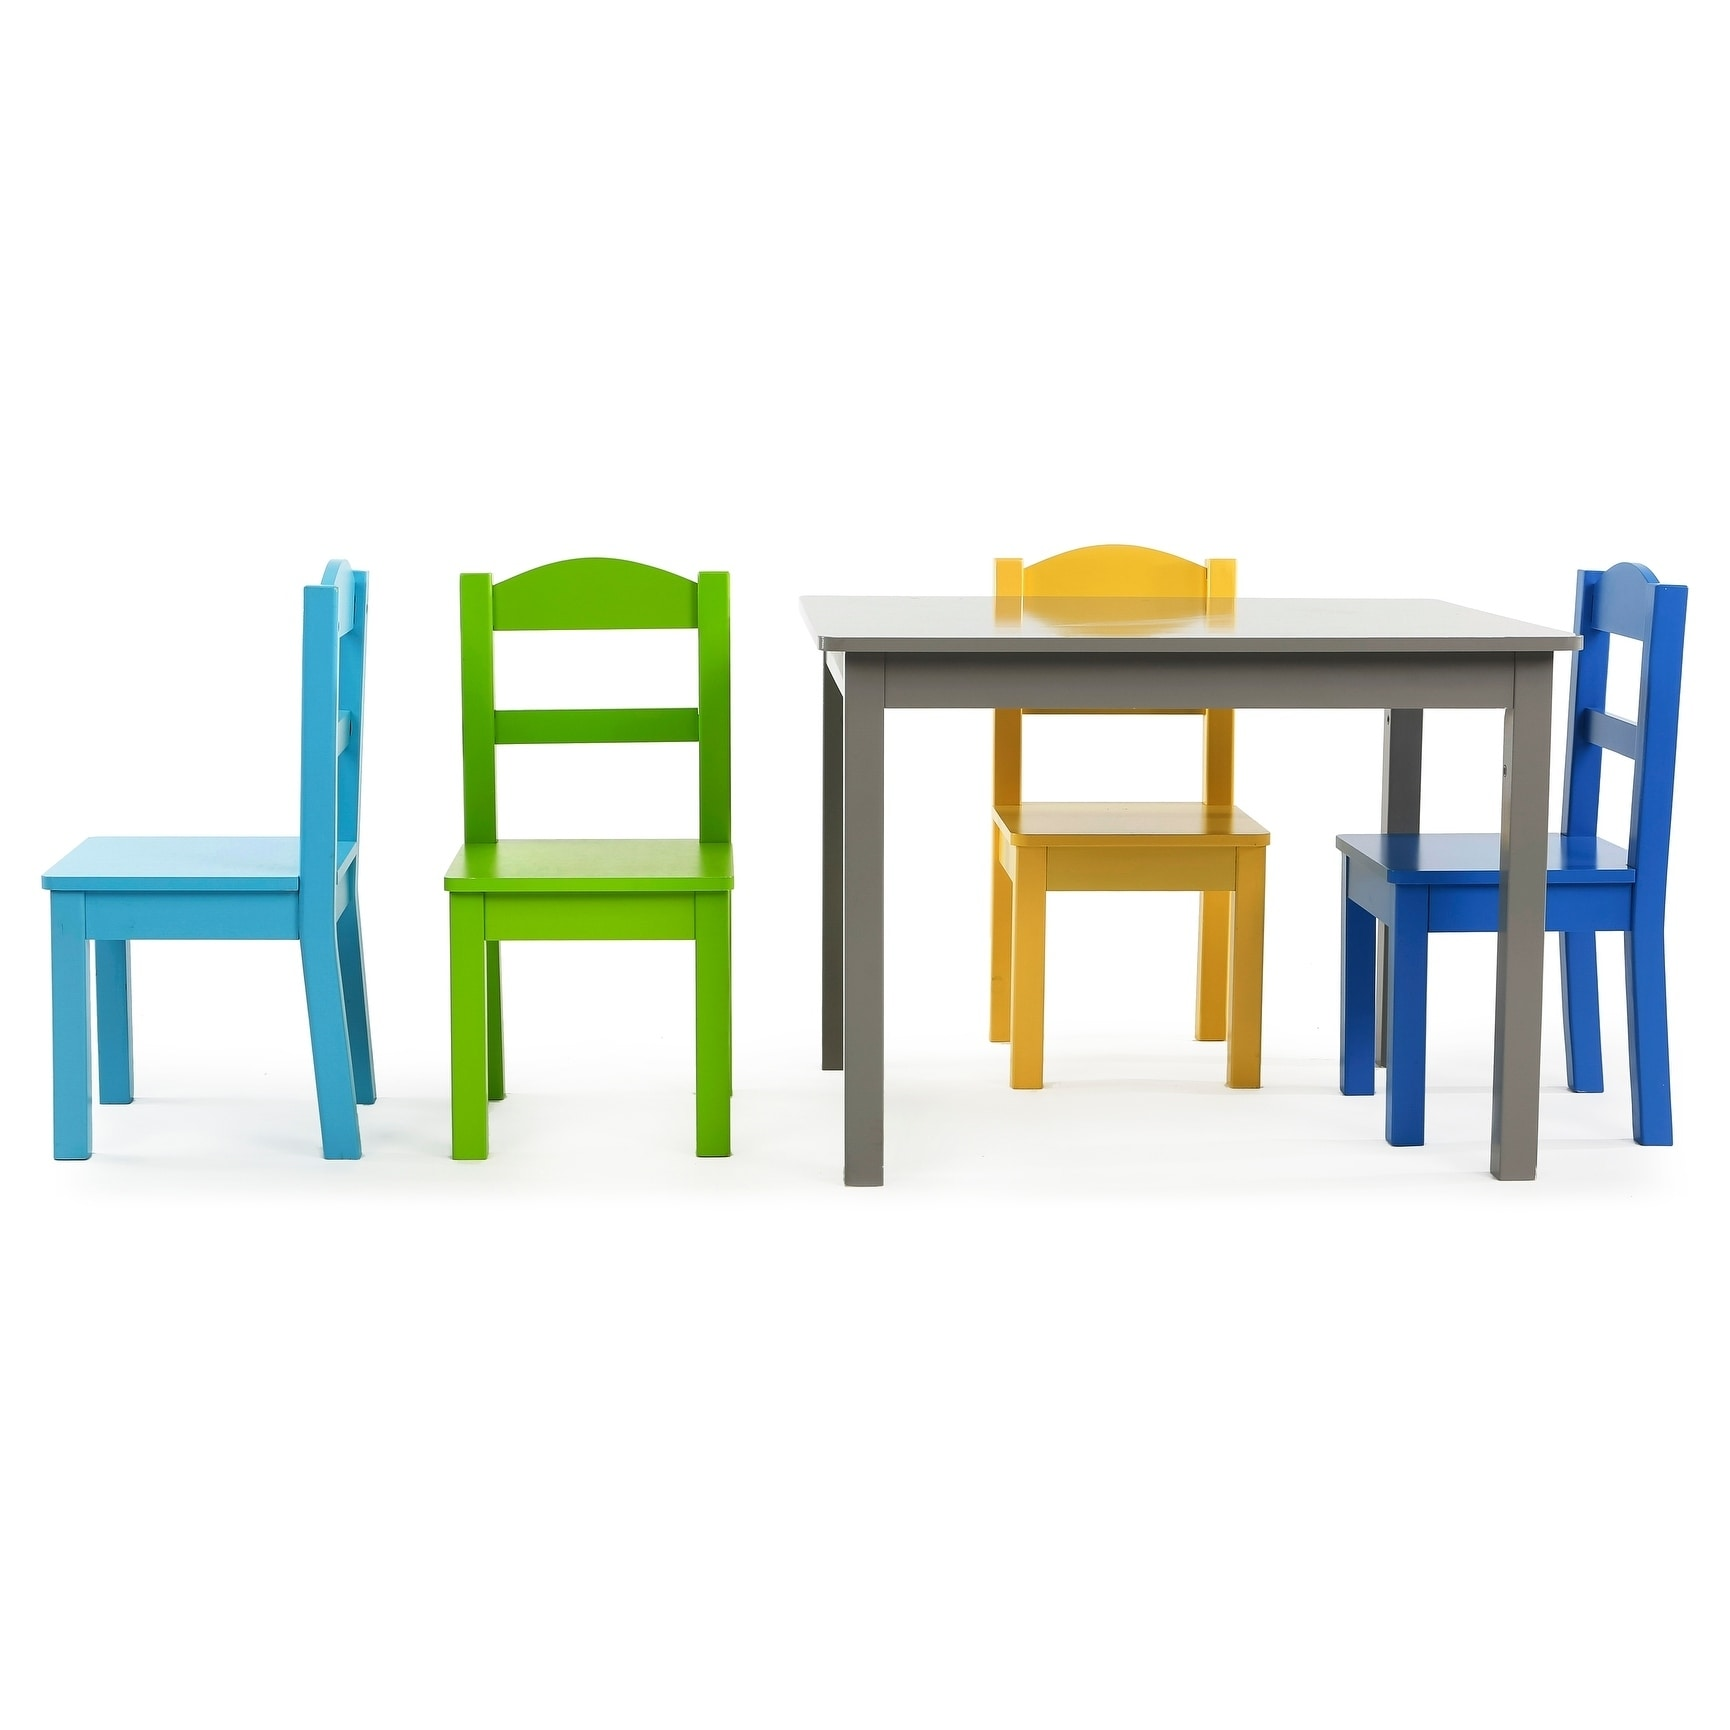 2d55274503fe7 Shop Elements 5-Piece Wood Kids Table   Chairs Set in Grey Multi - Free  Shipping Today - Overstock - 21801860